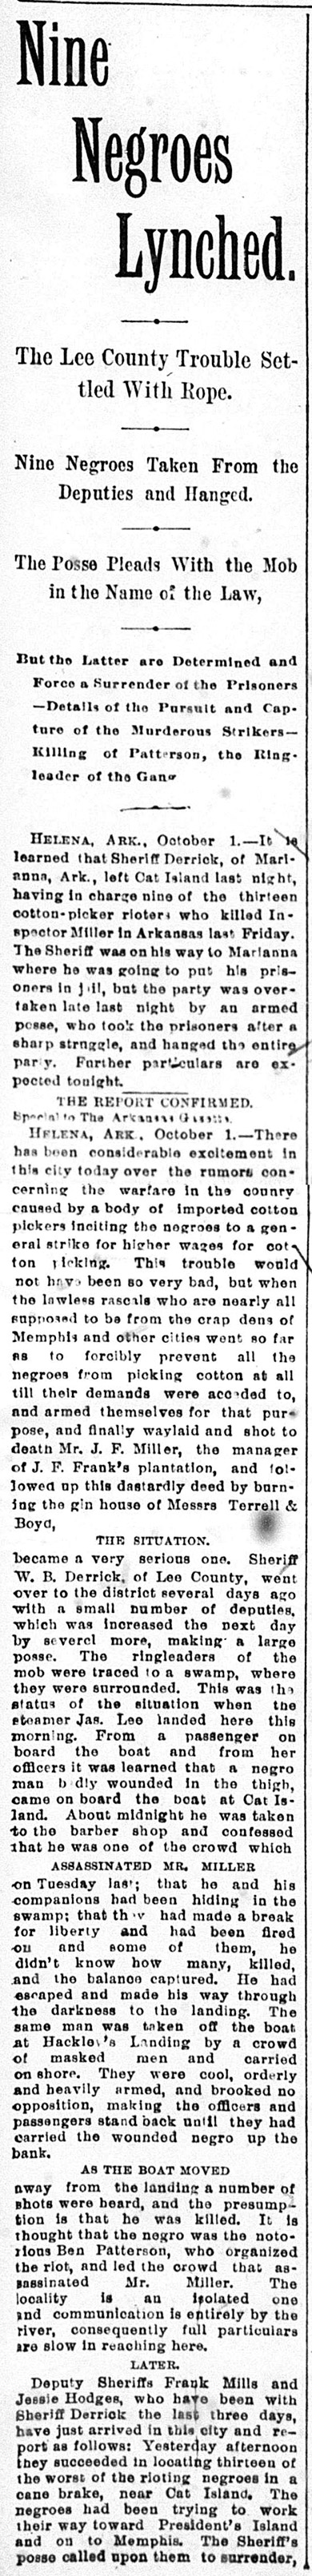 Cotton Pickers Strike Article